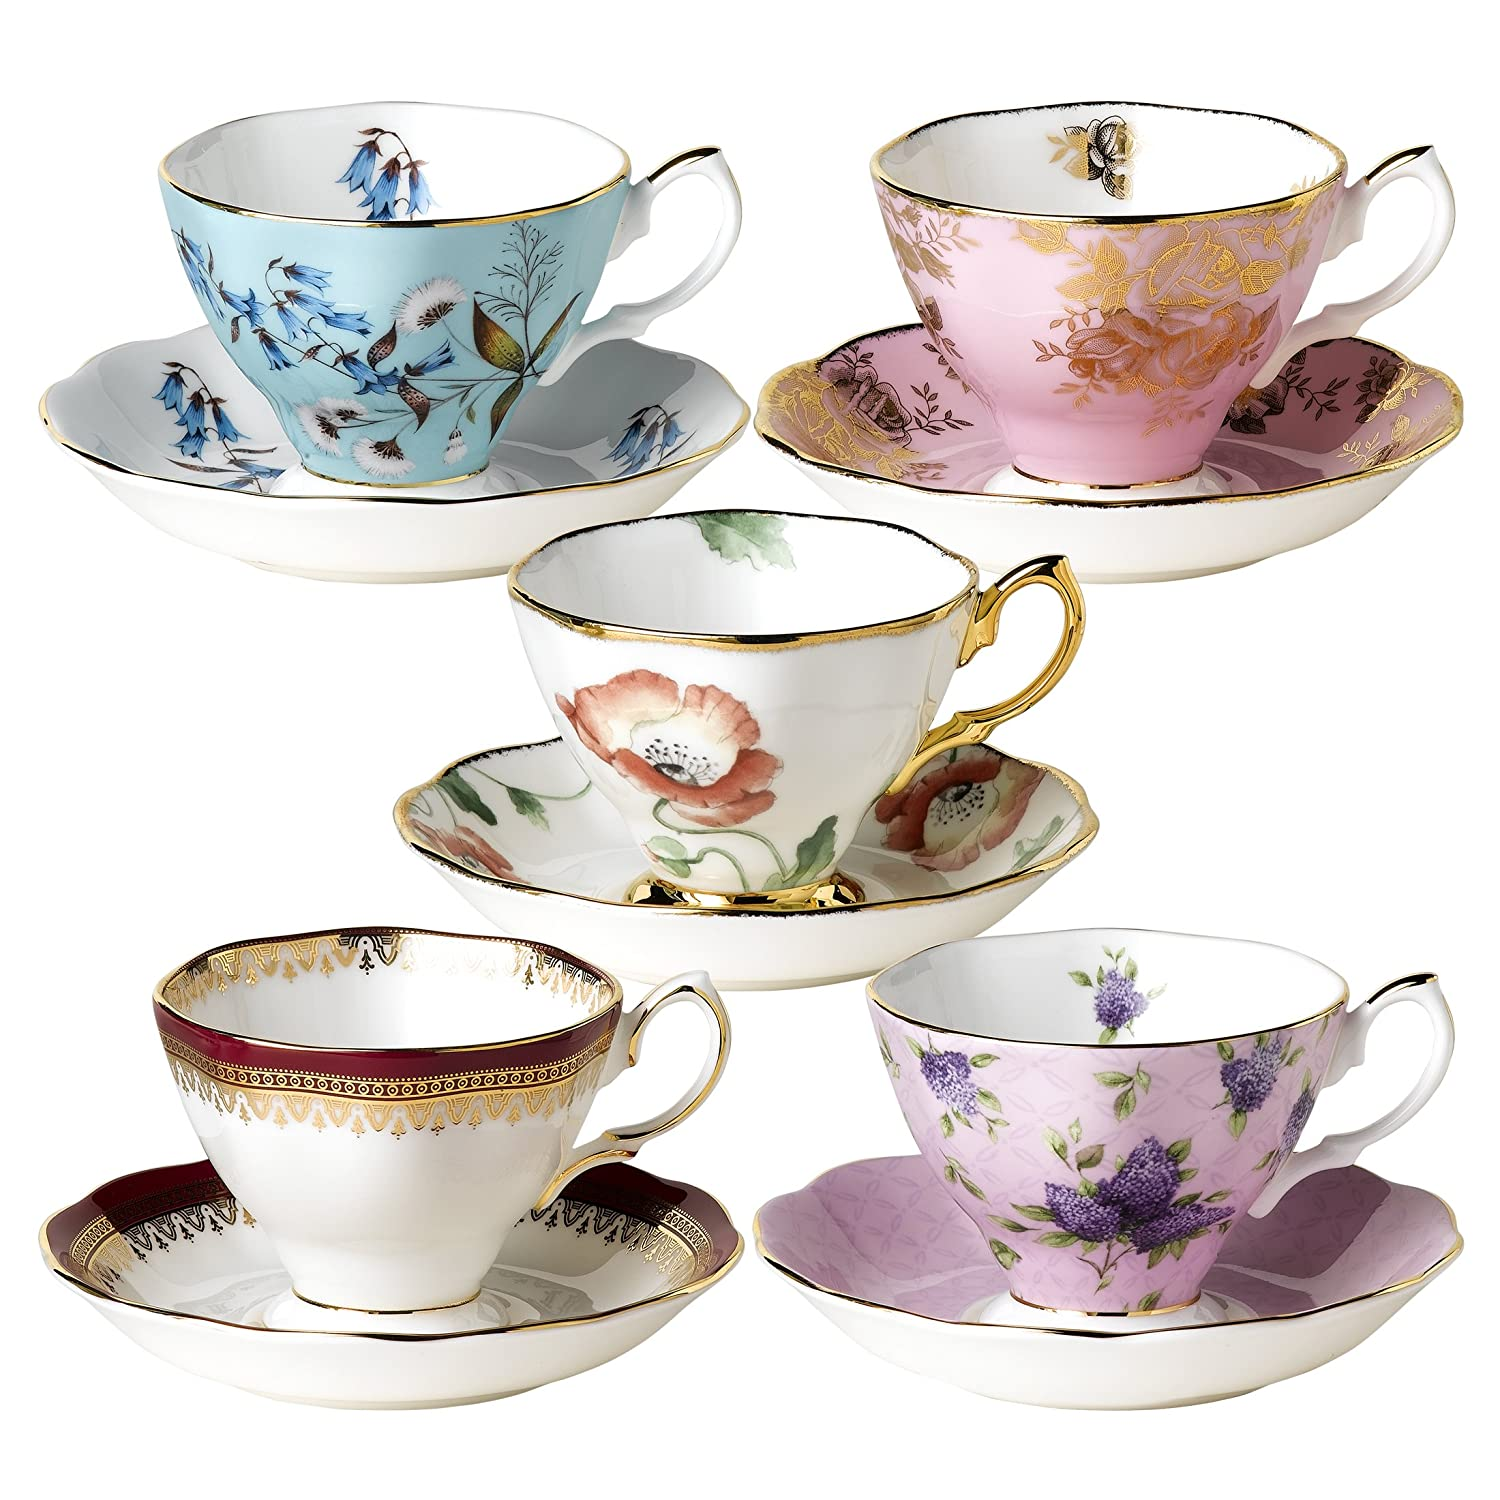 Royal Albert Teacups and Saucers, Set of 5, 1950-1990